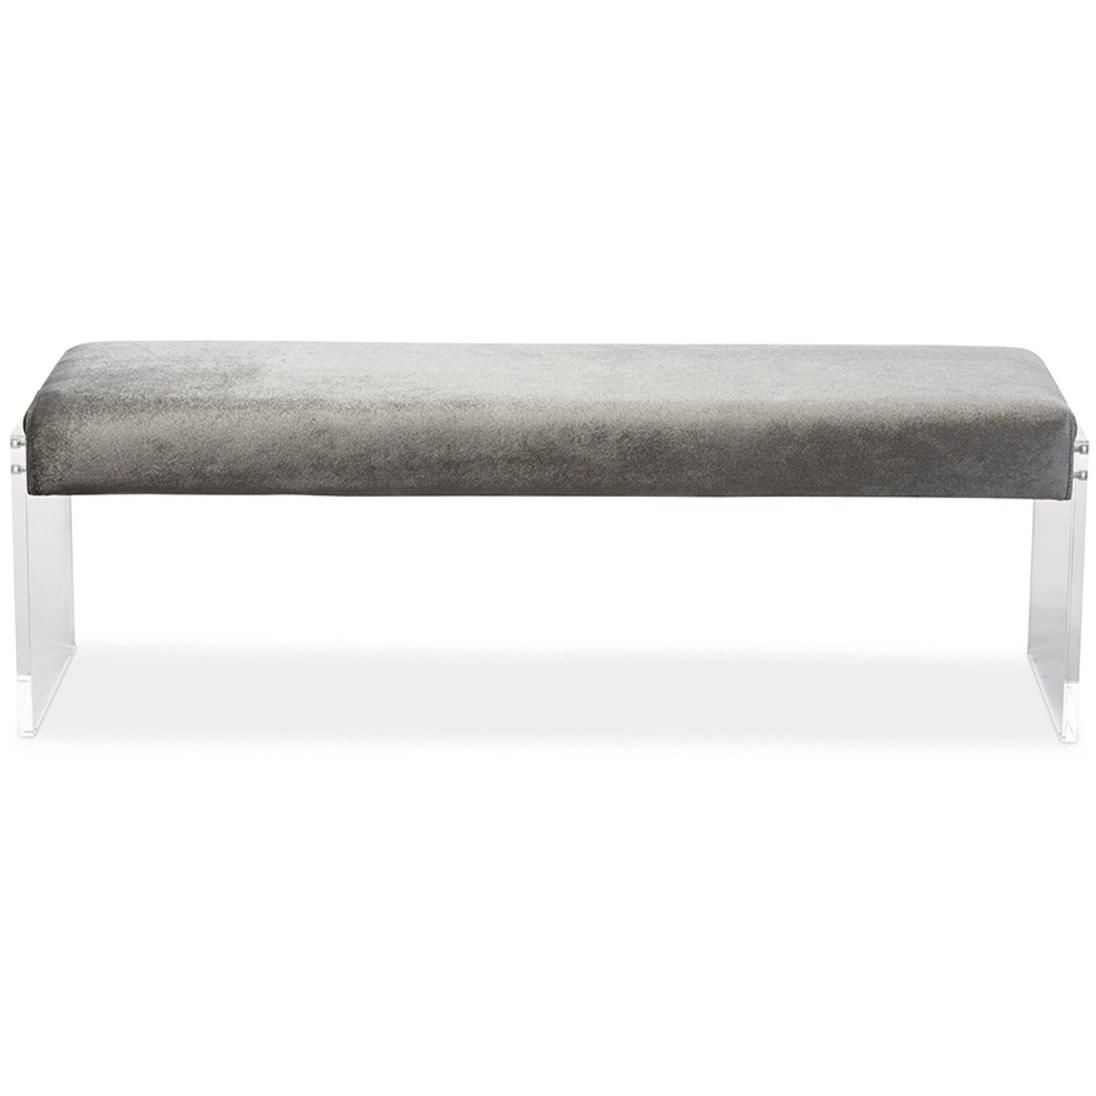 Baxton Studio Hildon Modern And Contemporary Grey Microsuede Fabric Upholstered Lux Bench With Paneled Acrylic Legs Acrylic Legs Baxton Microsuede